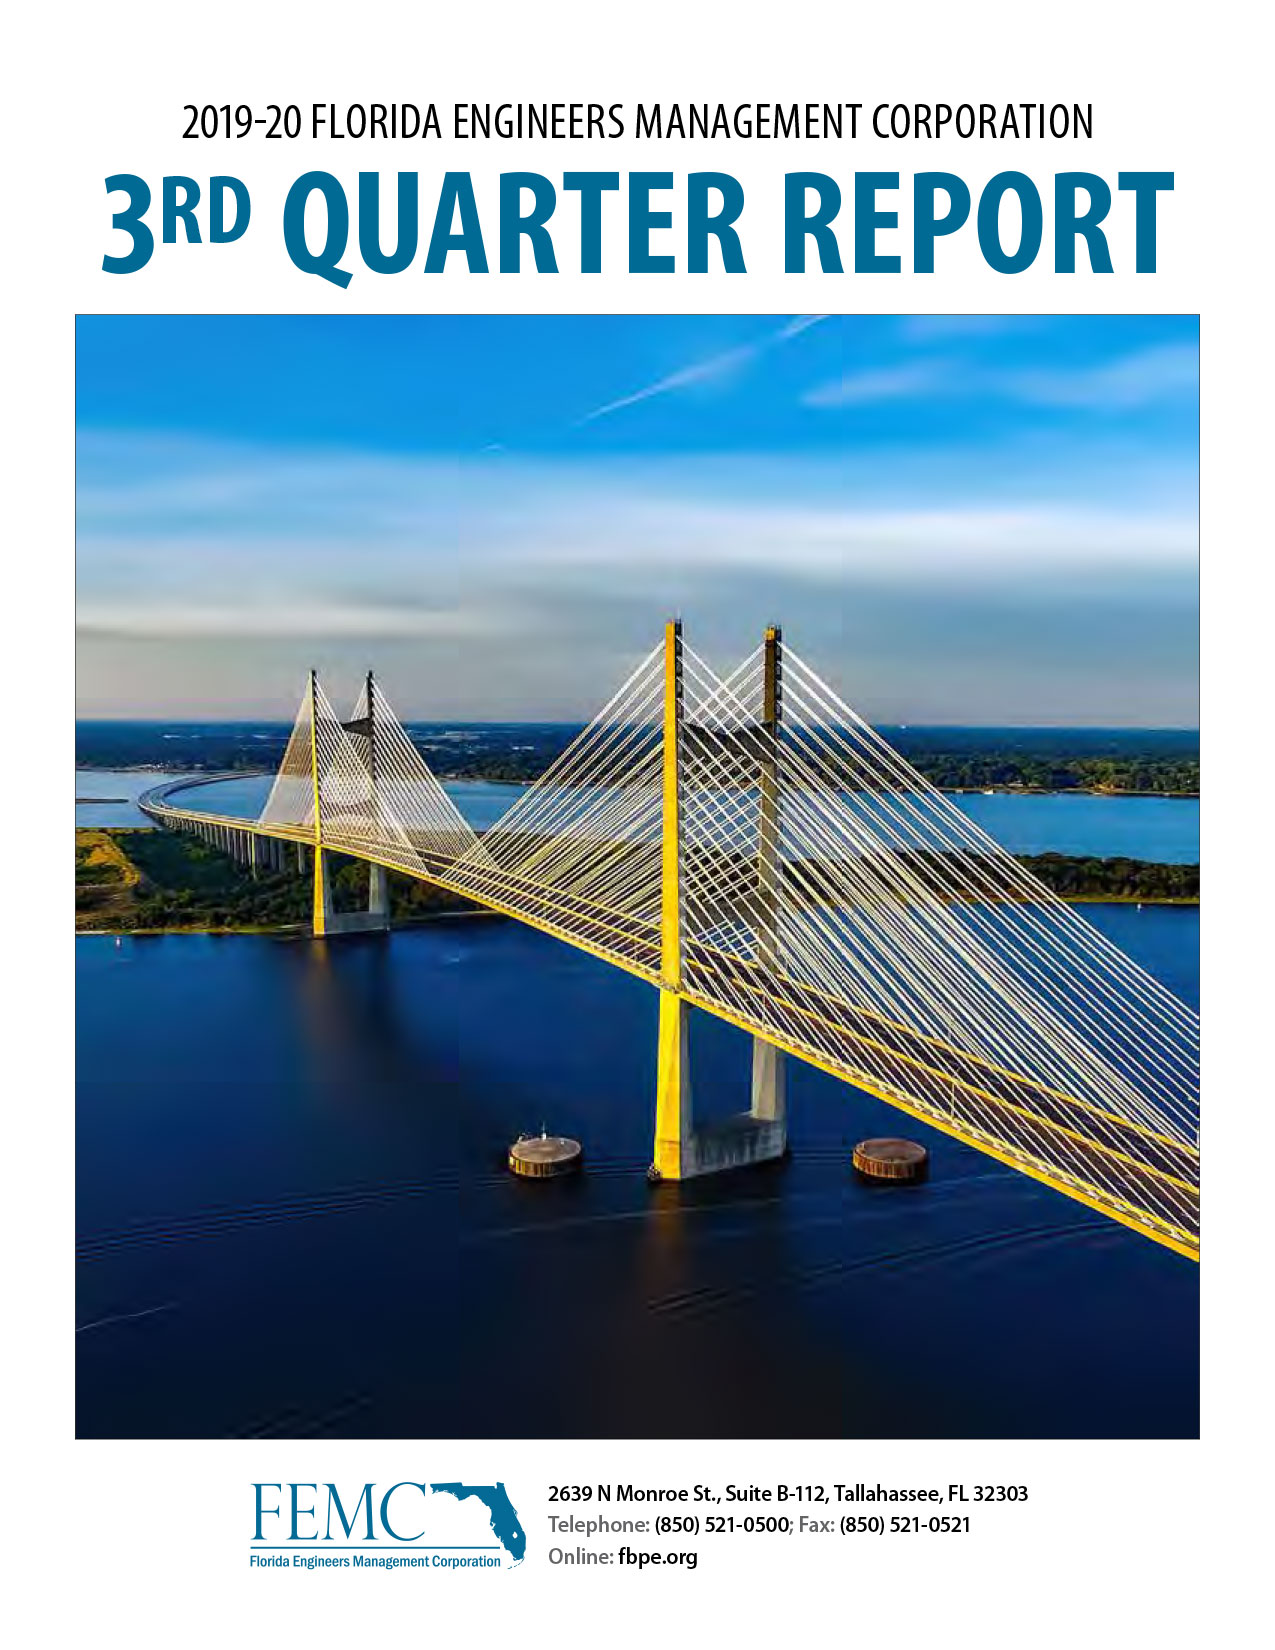 Cover of the 2019-20 Florida Engineers Management Corporation 3rd Quarter Report, showing the Sunshine Skyway Bridge